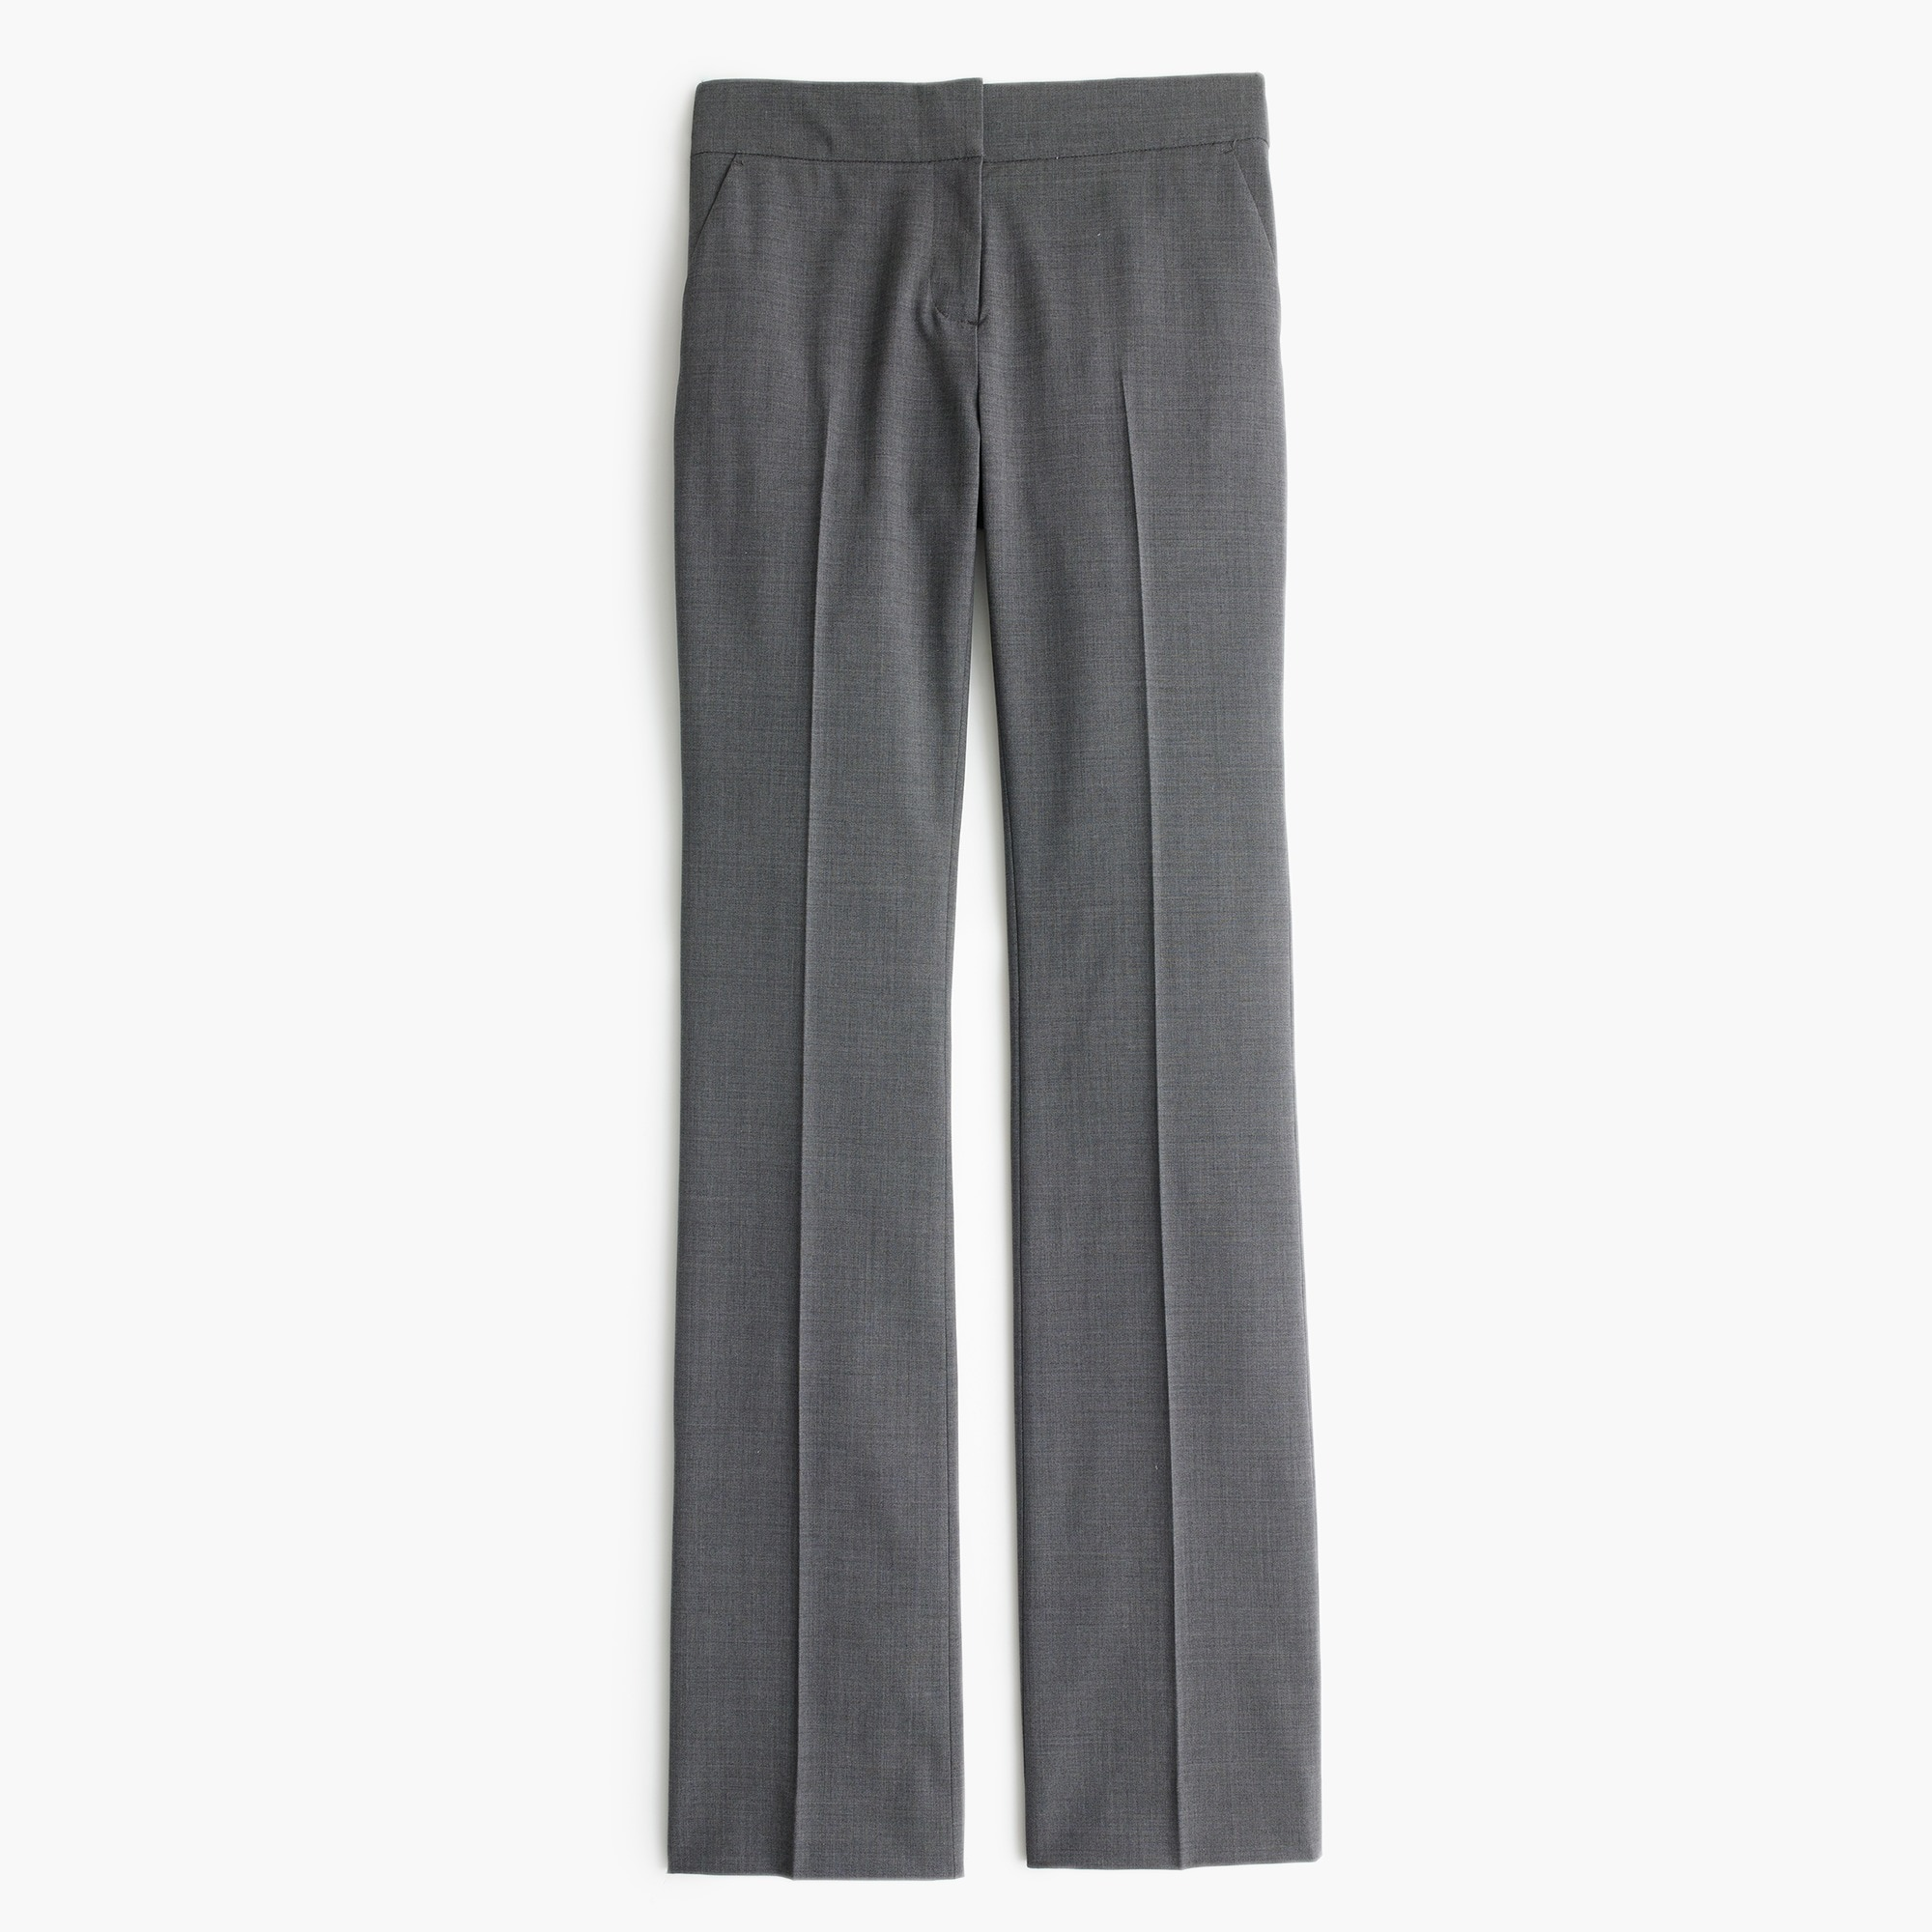 Edie full-length lined trouser in Italian two-way stretch wool